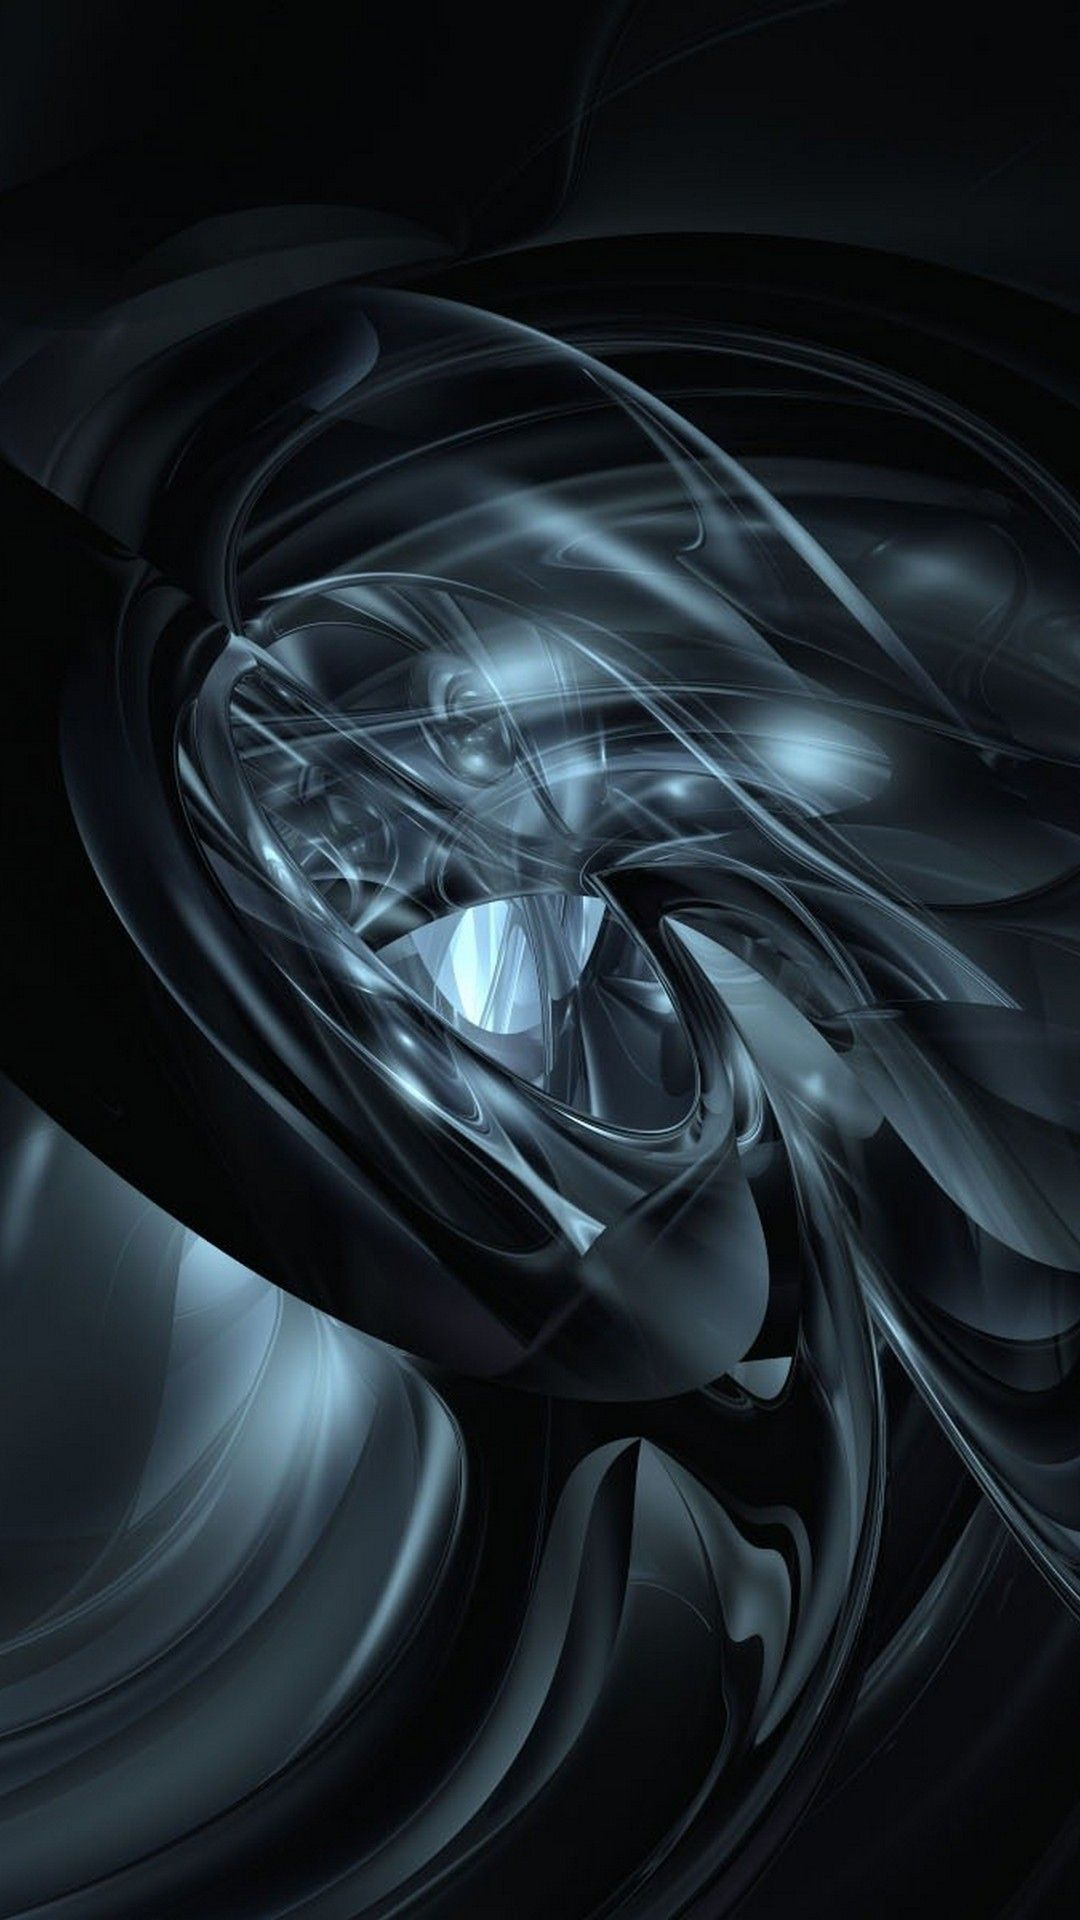 Http Www Vactualpapers Com Gallery Abstract Hd Wallpaper For Mobile Devices 19 Samsung Galaxy Wallpaper Hd Wallpaper Iphone Best Wallpapers Android